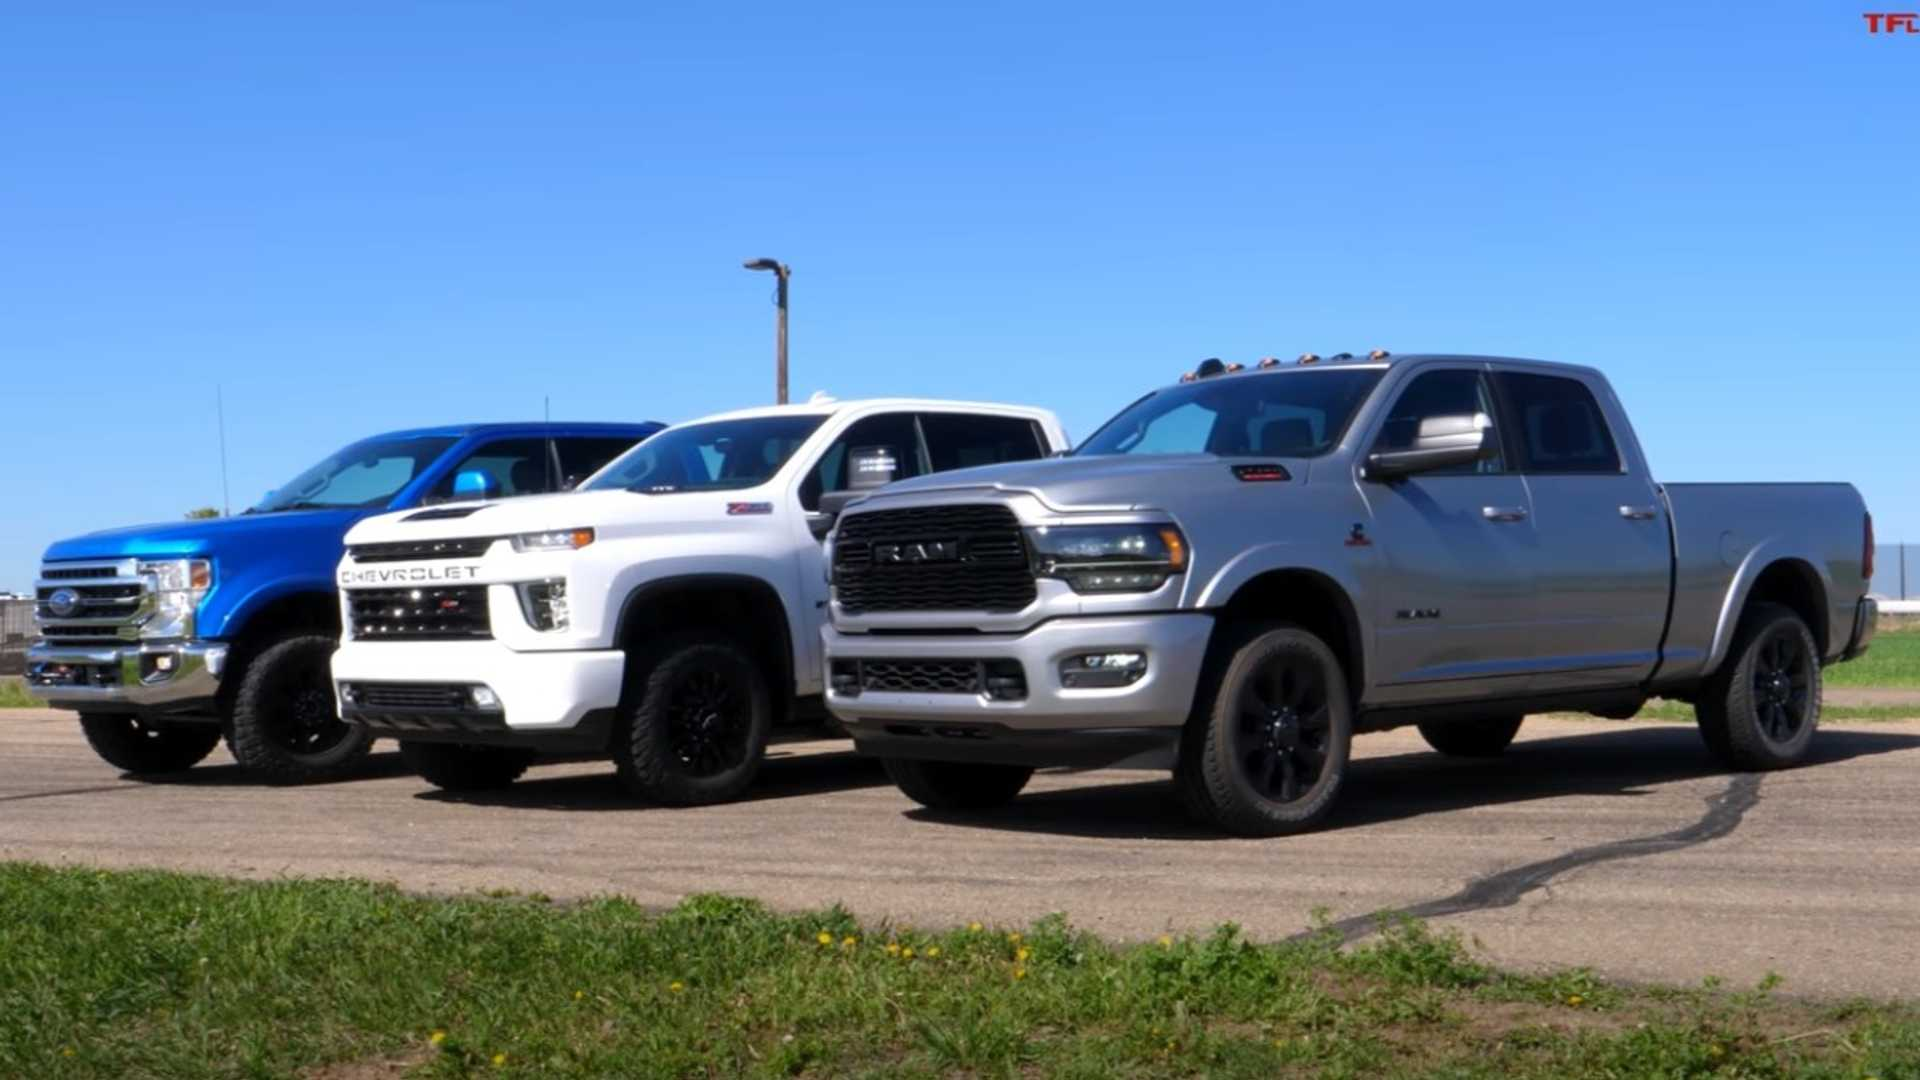 Heavy Duty Truck Drag: Chevy, Ram, And Ford Meet On The Track